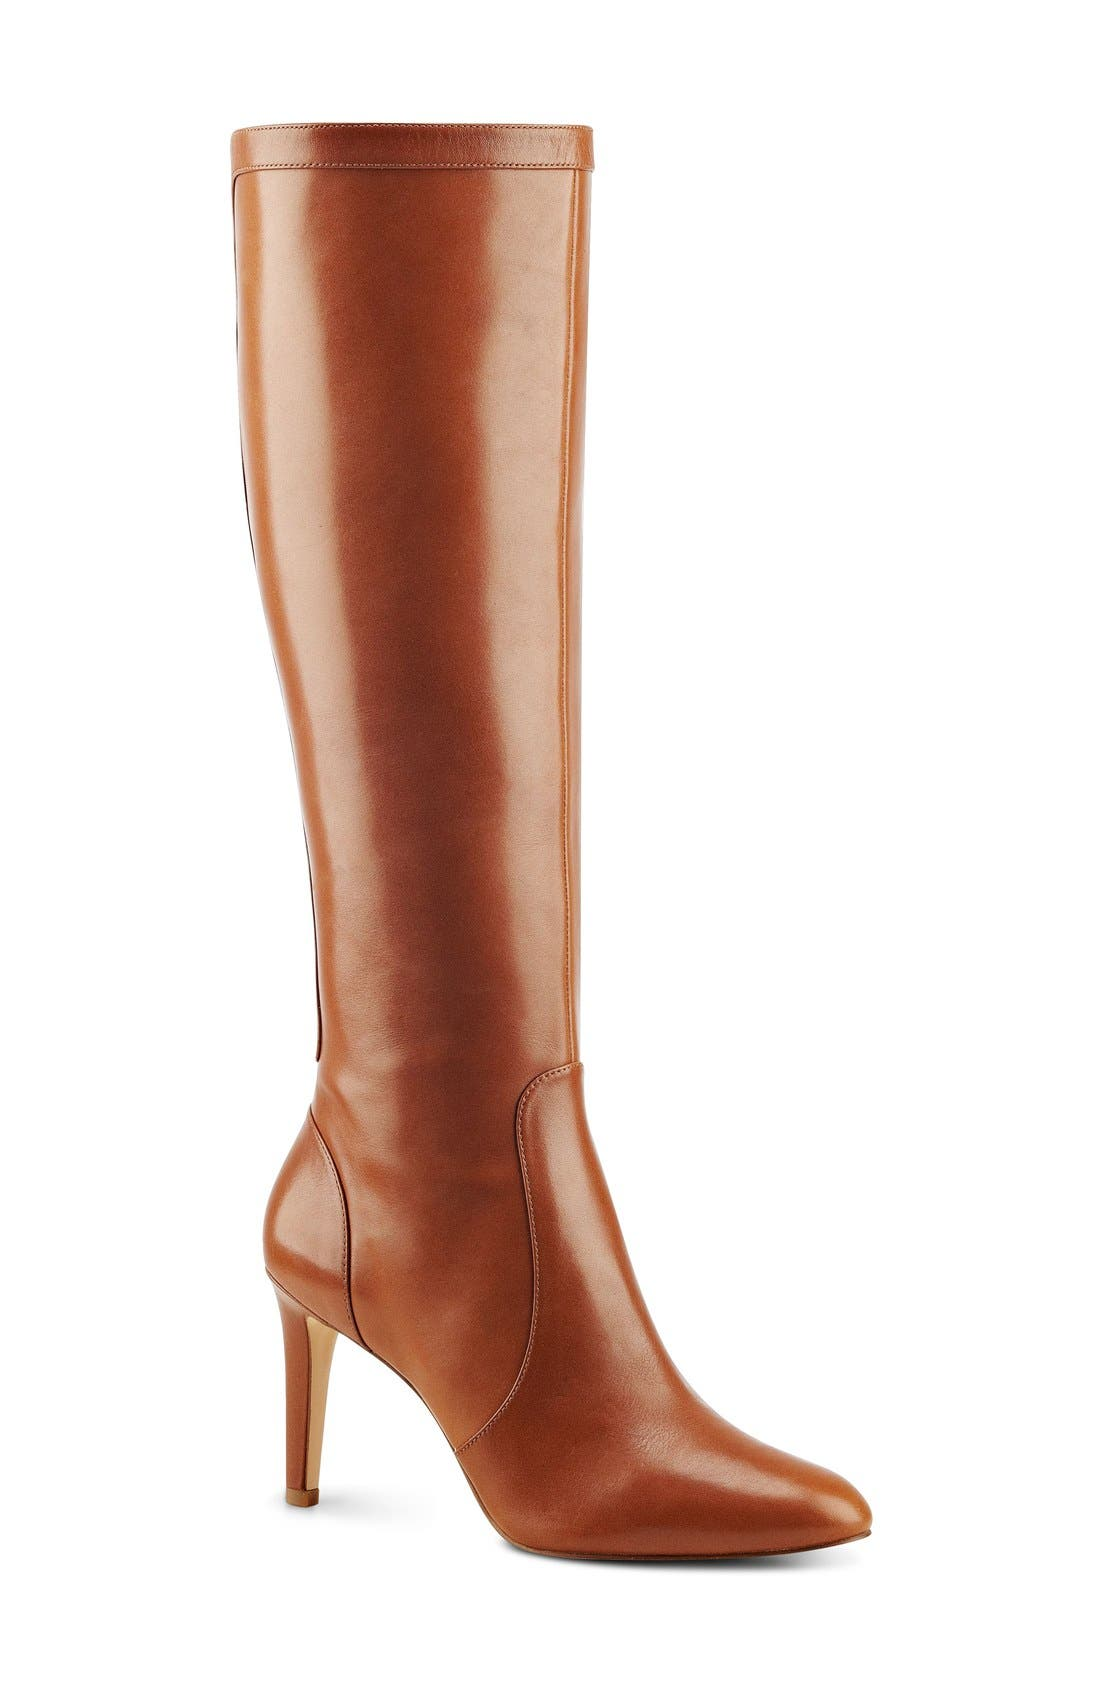 Main Image - Nine West 'Hold Tight' High Heel Boot